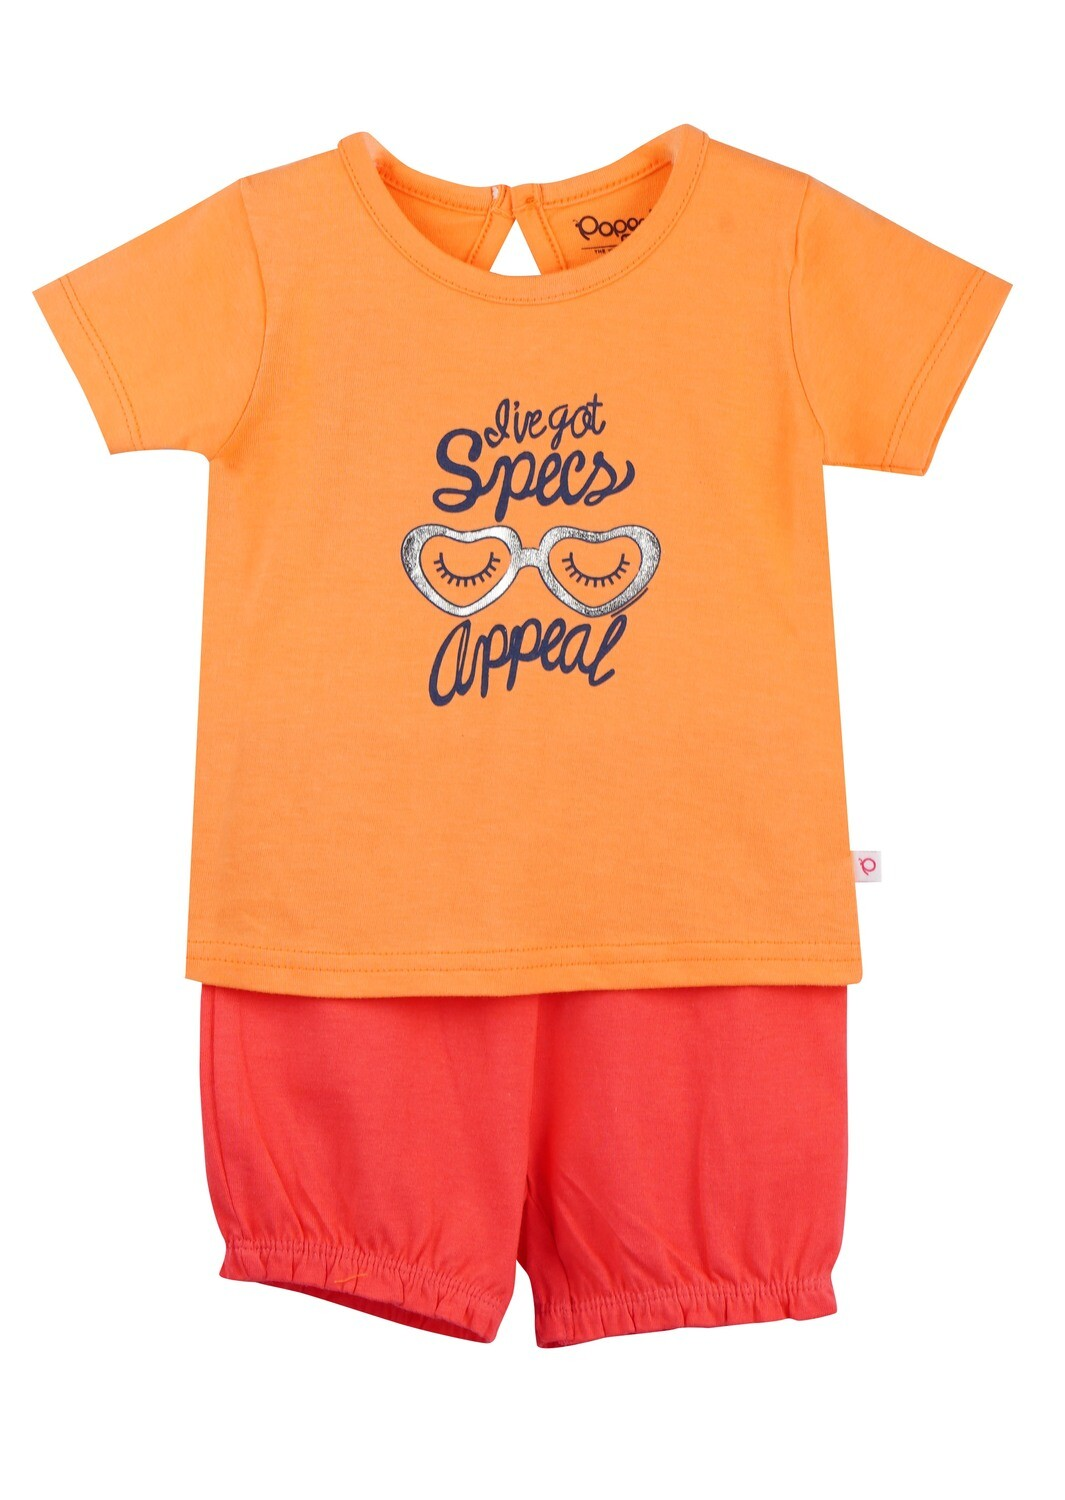 LEVINE Cantaloupe Half sleeve Top and Shorts for Baby Girls